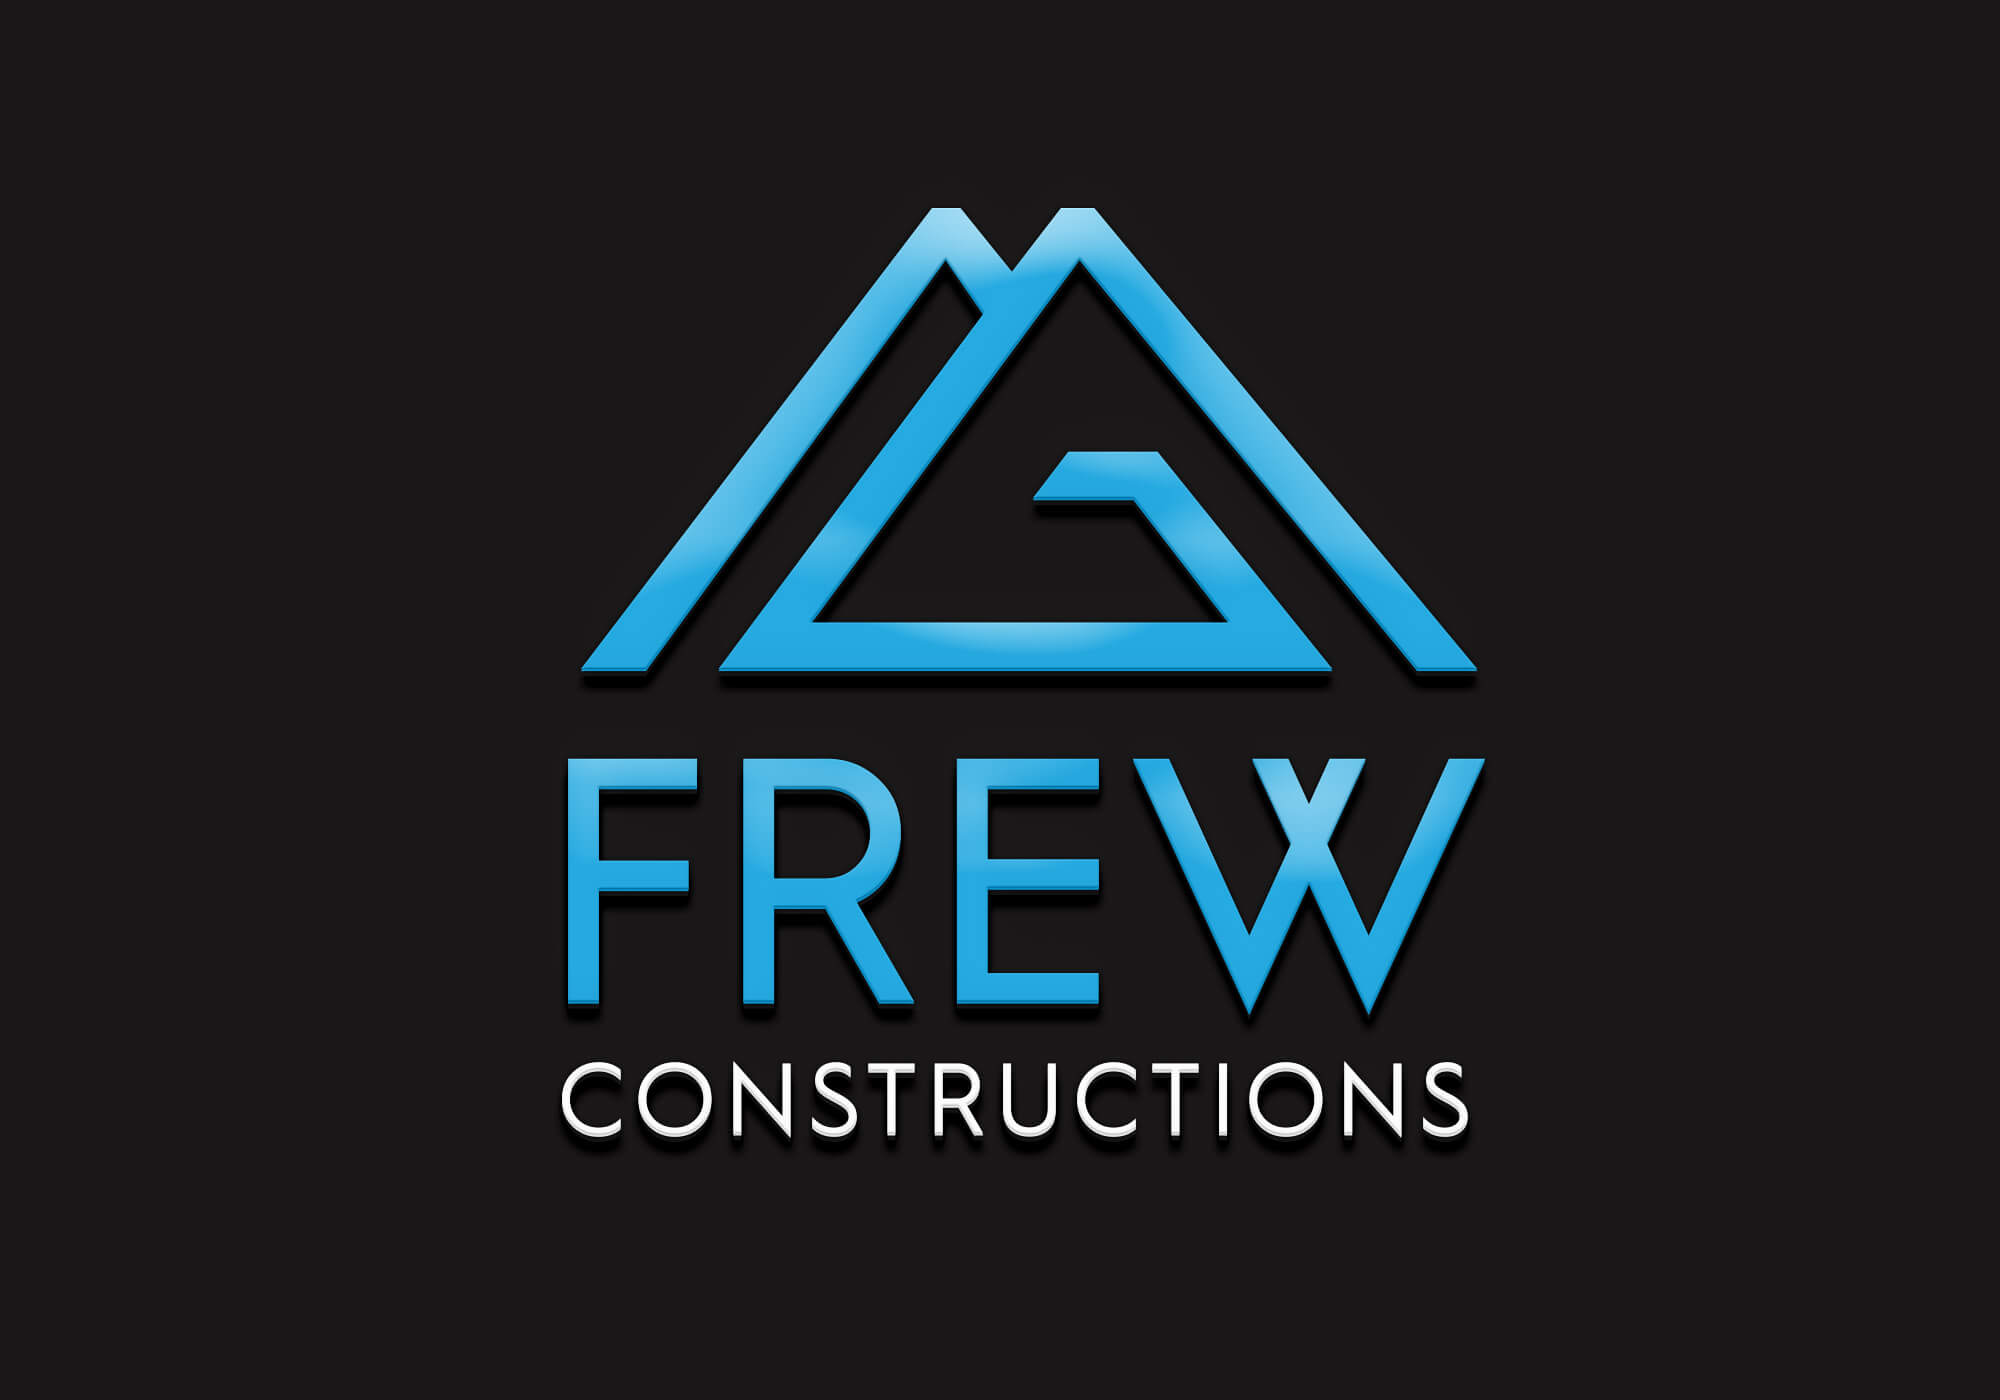 AG Frew constructions logo for case study